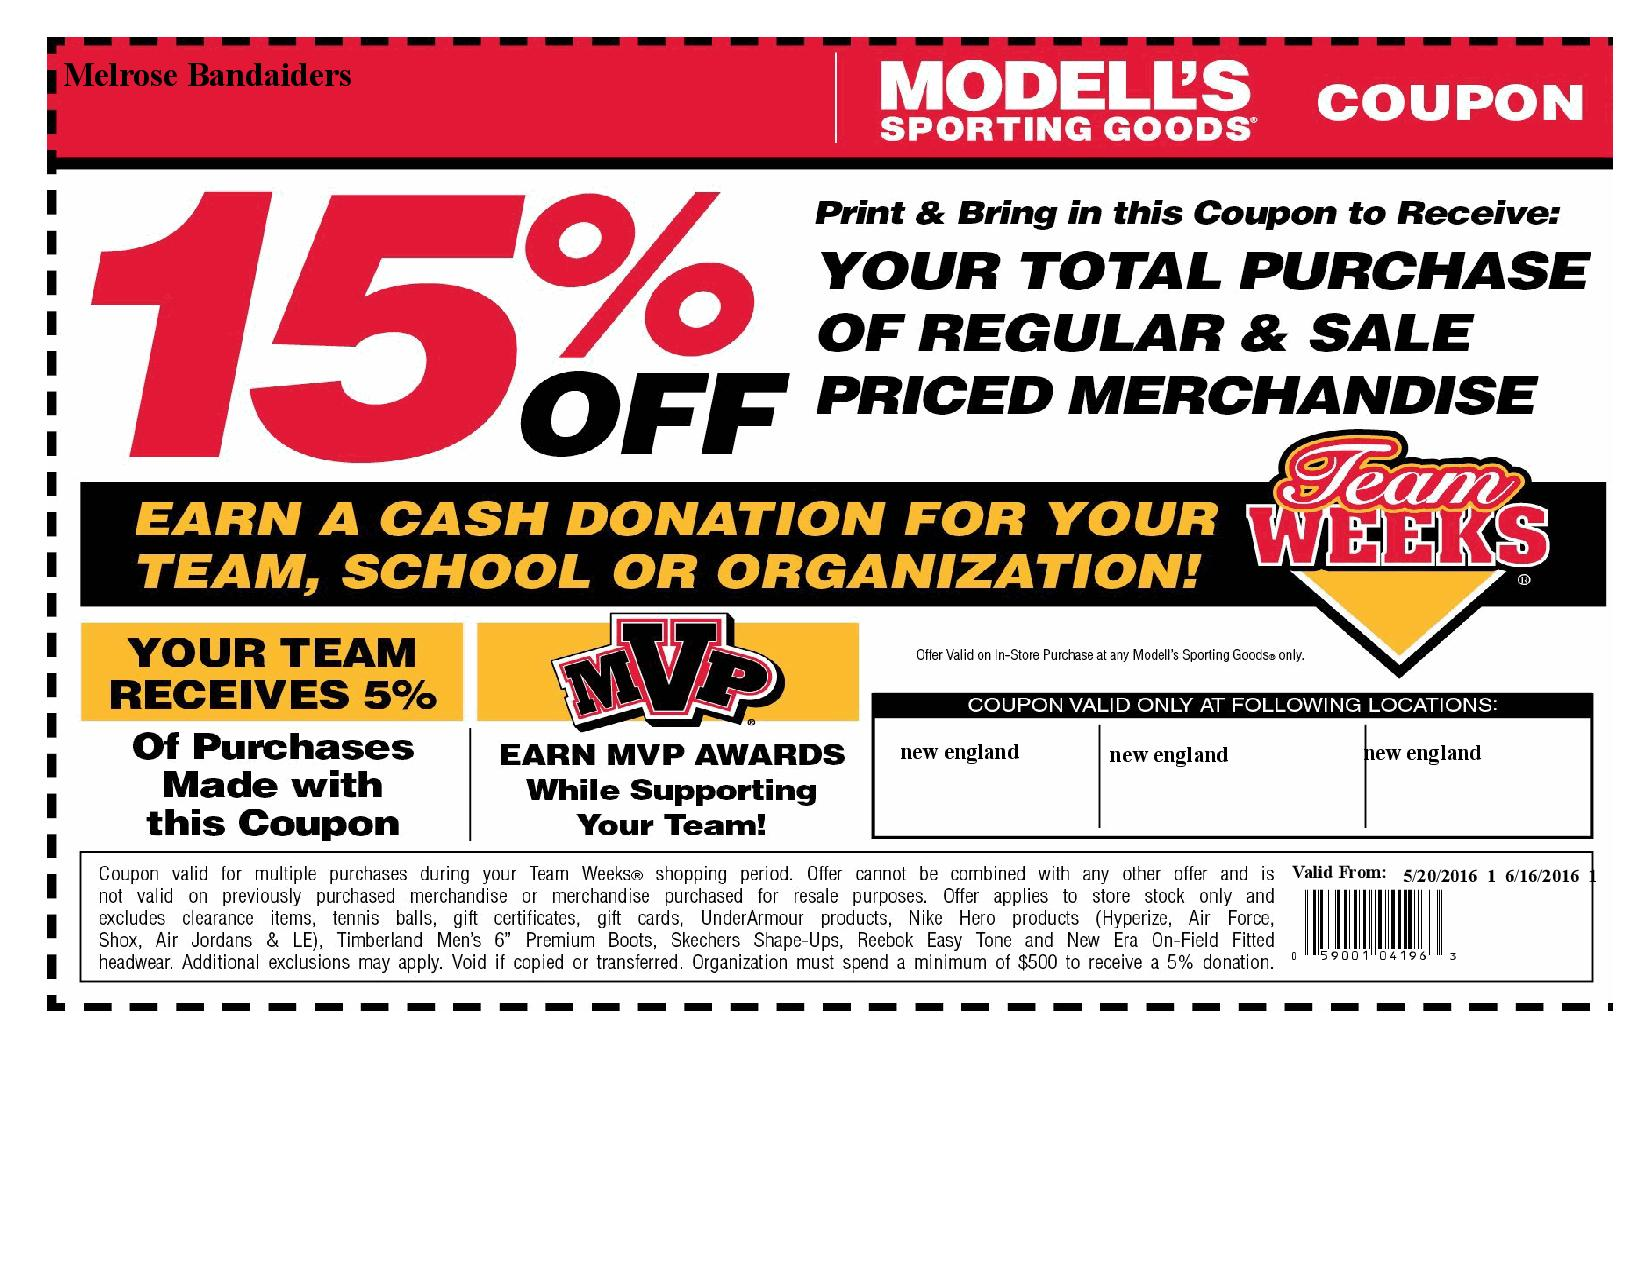 2016 Modells Coupon